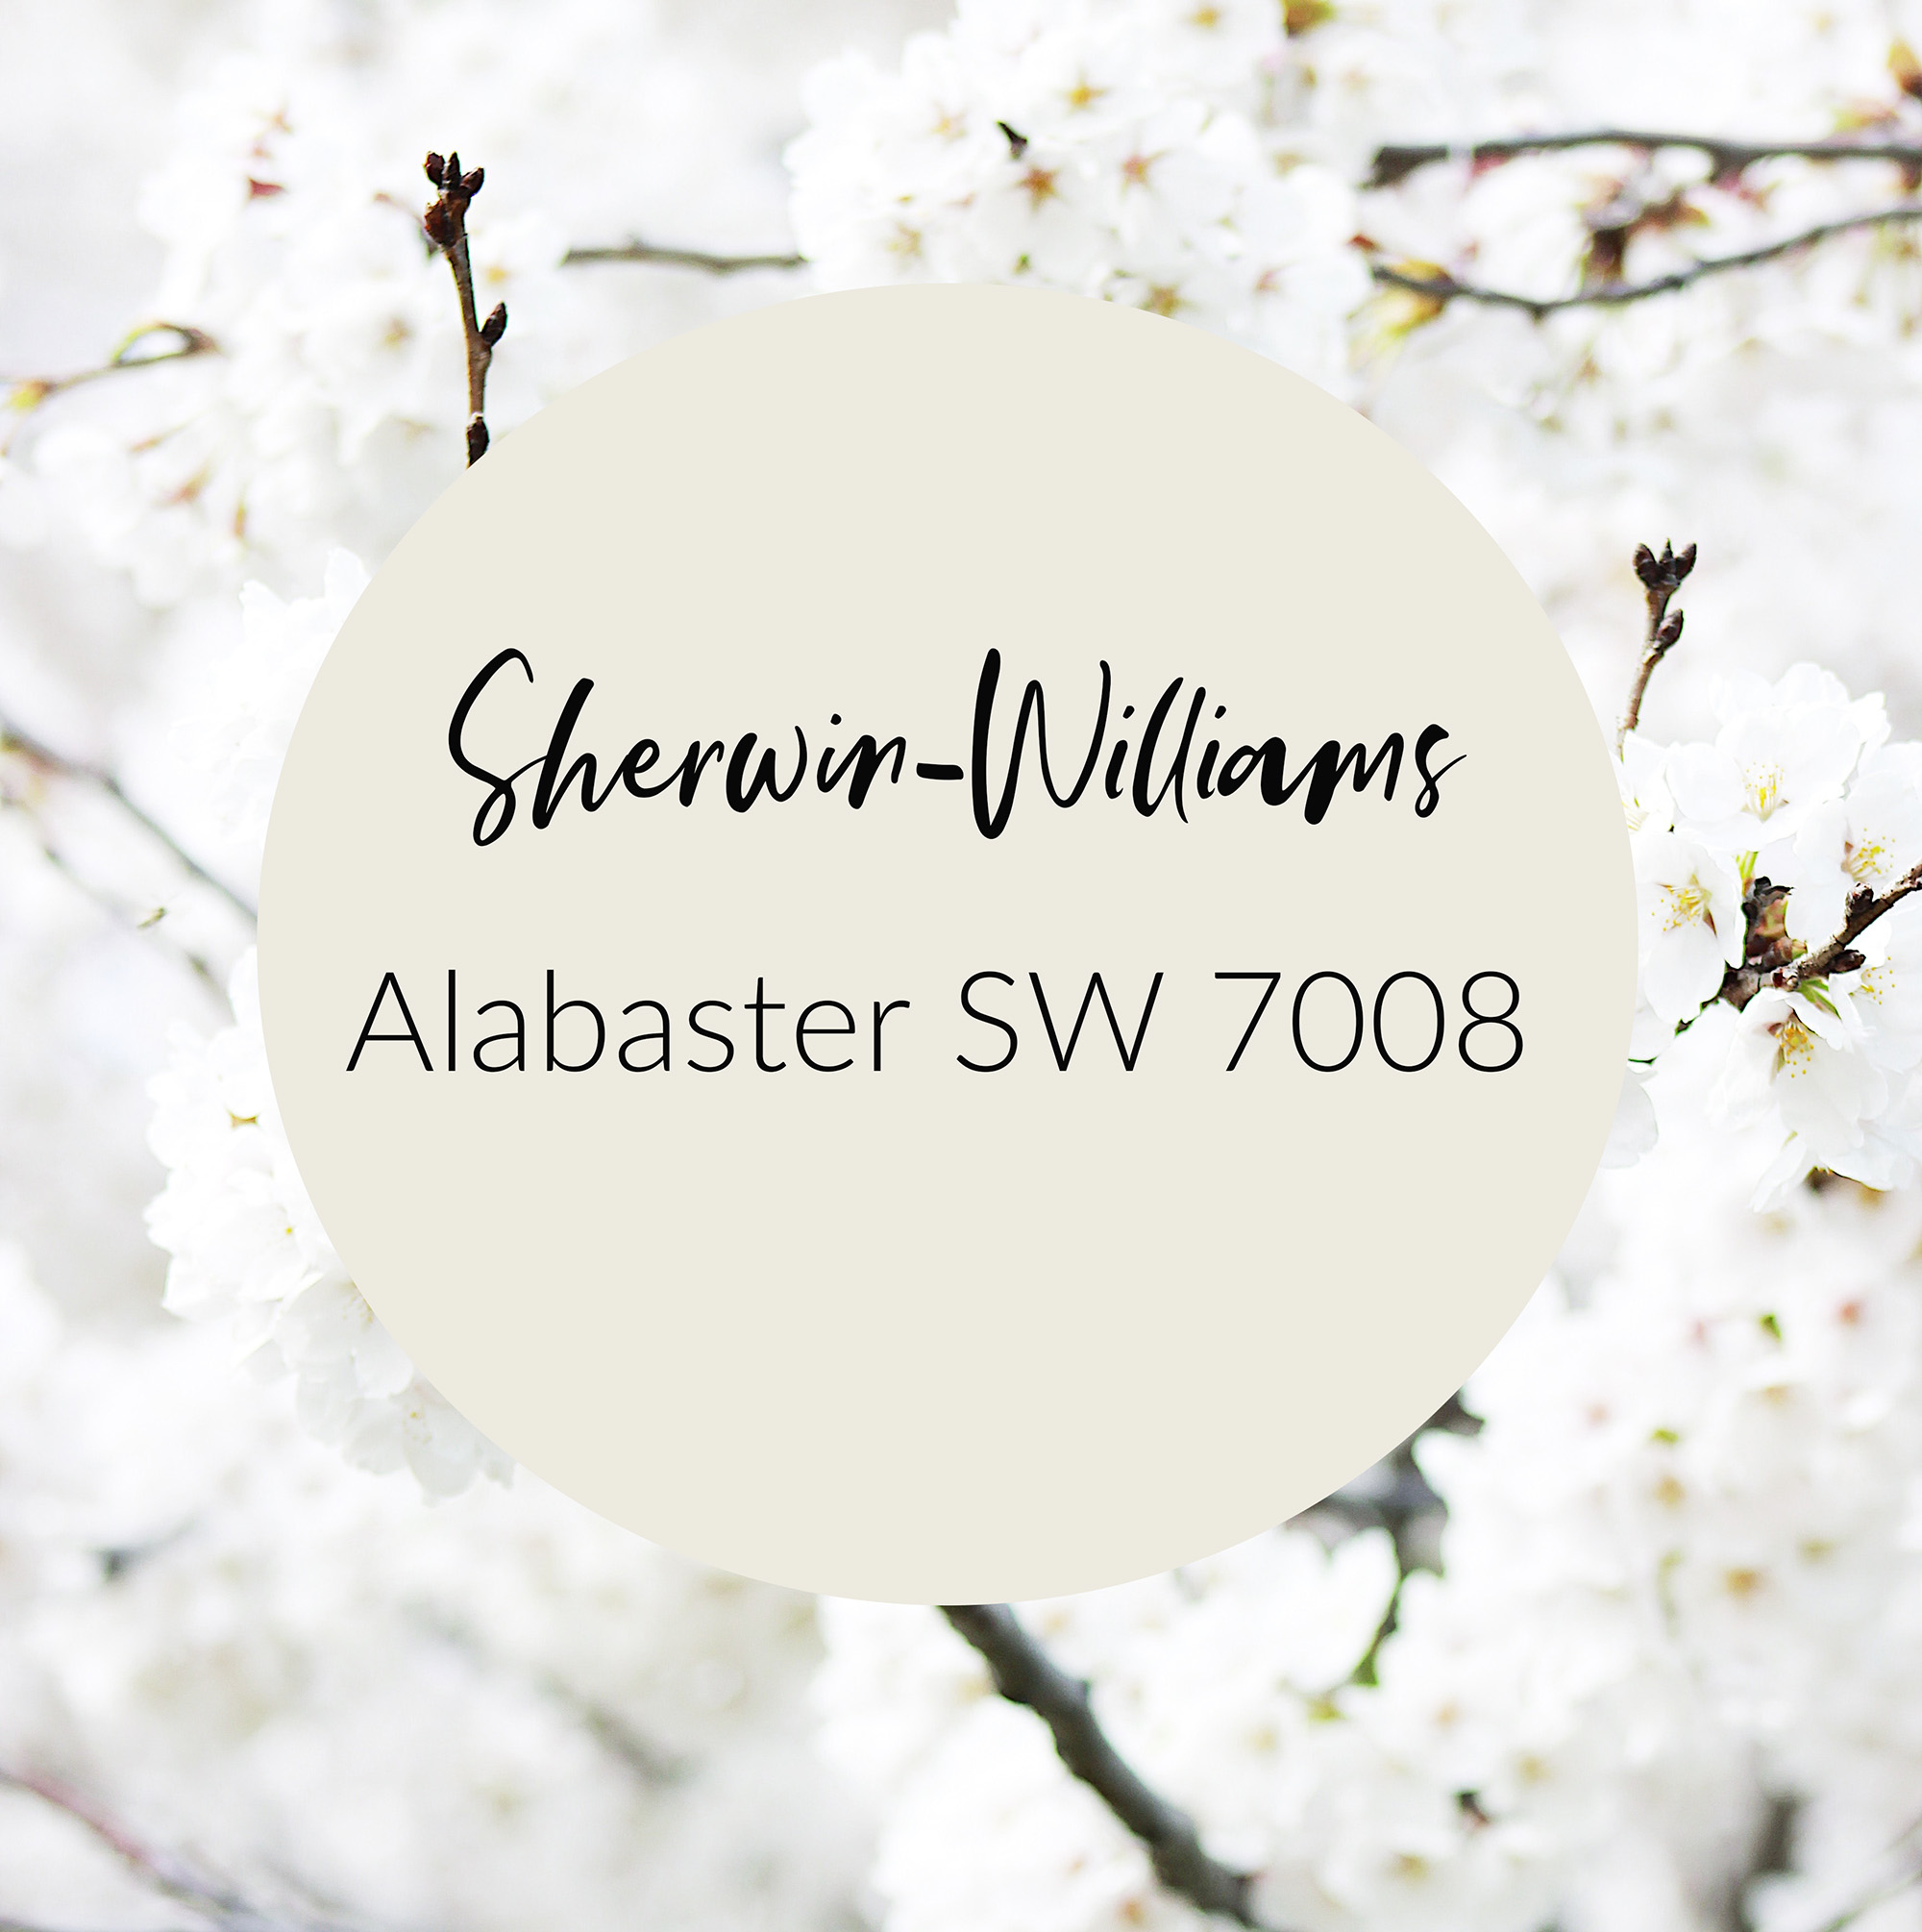 alabaster sherwin williams